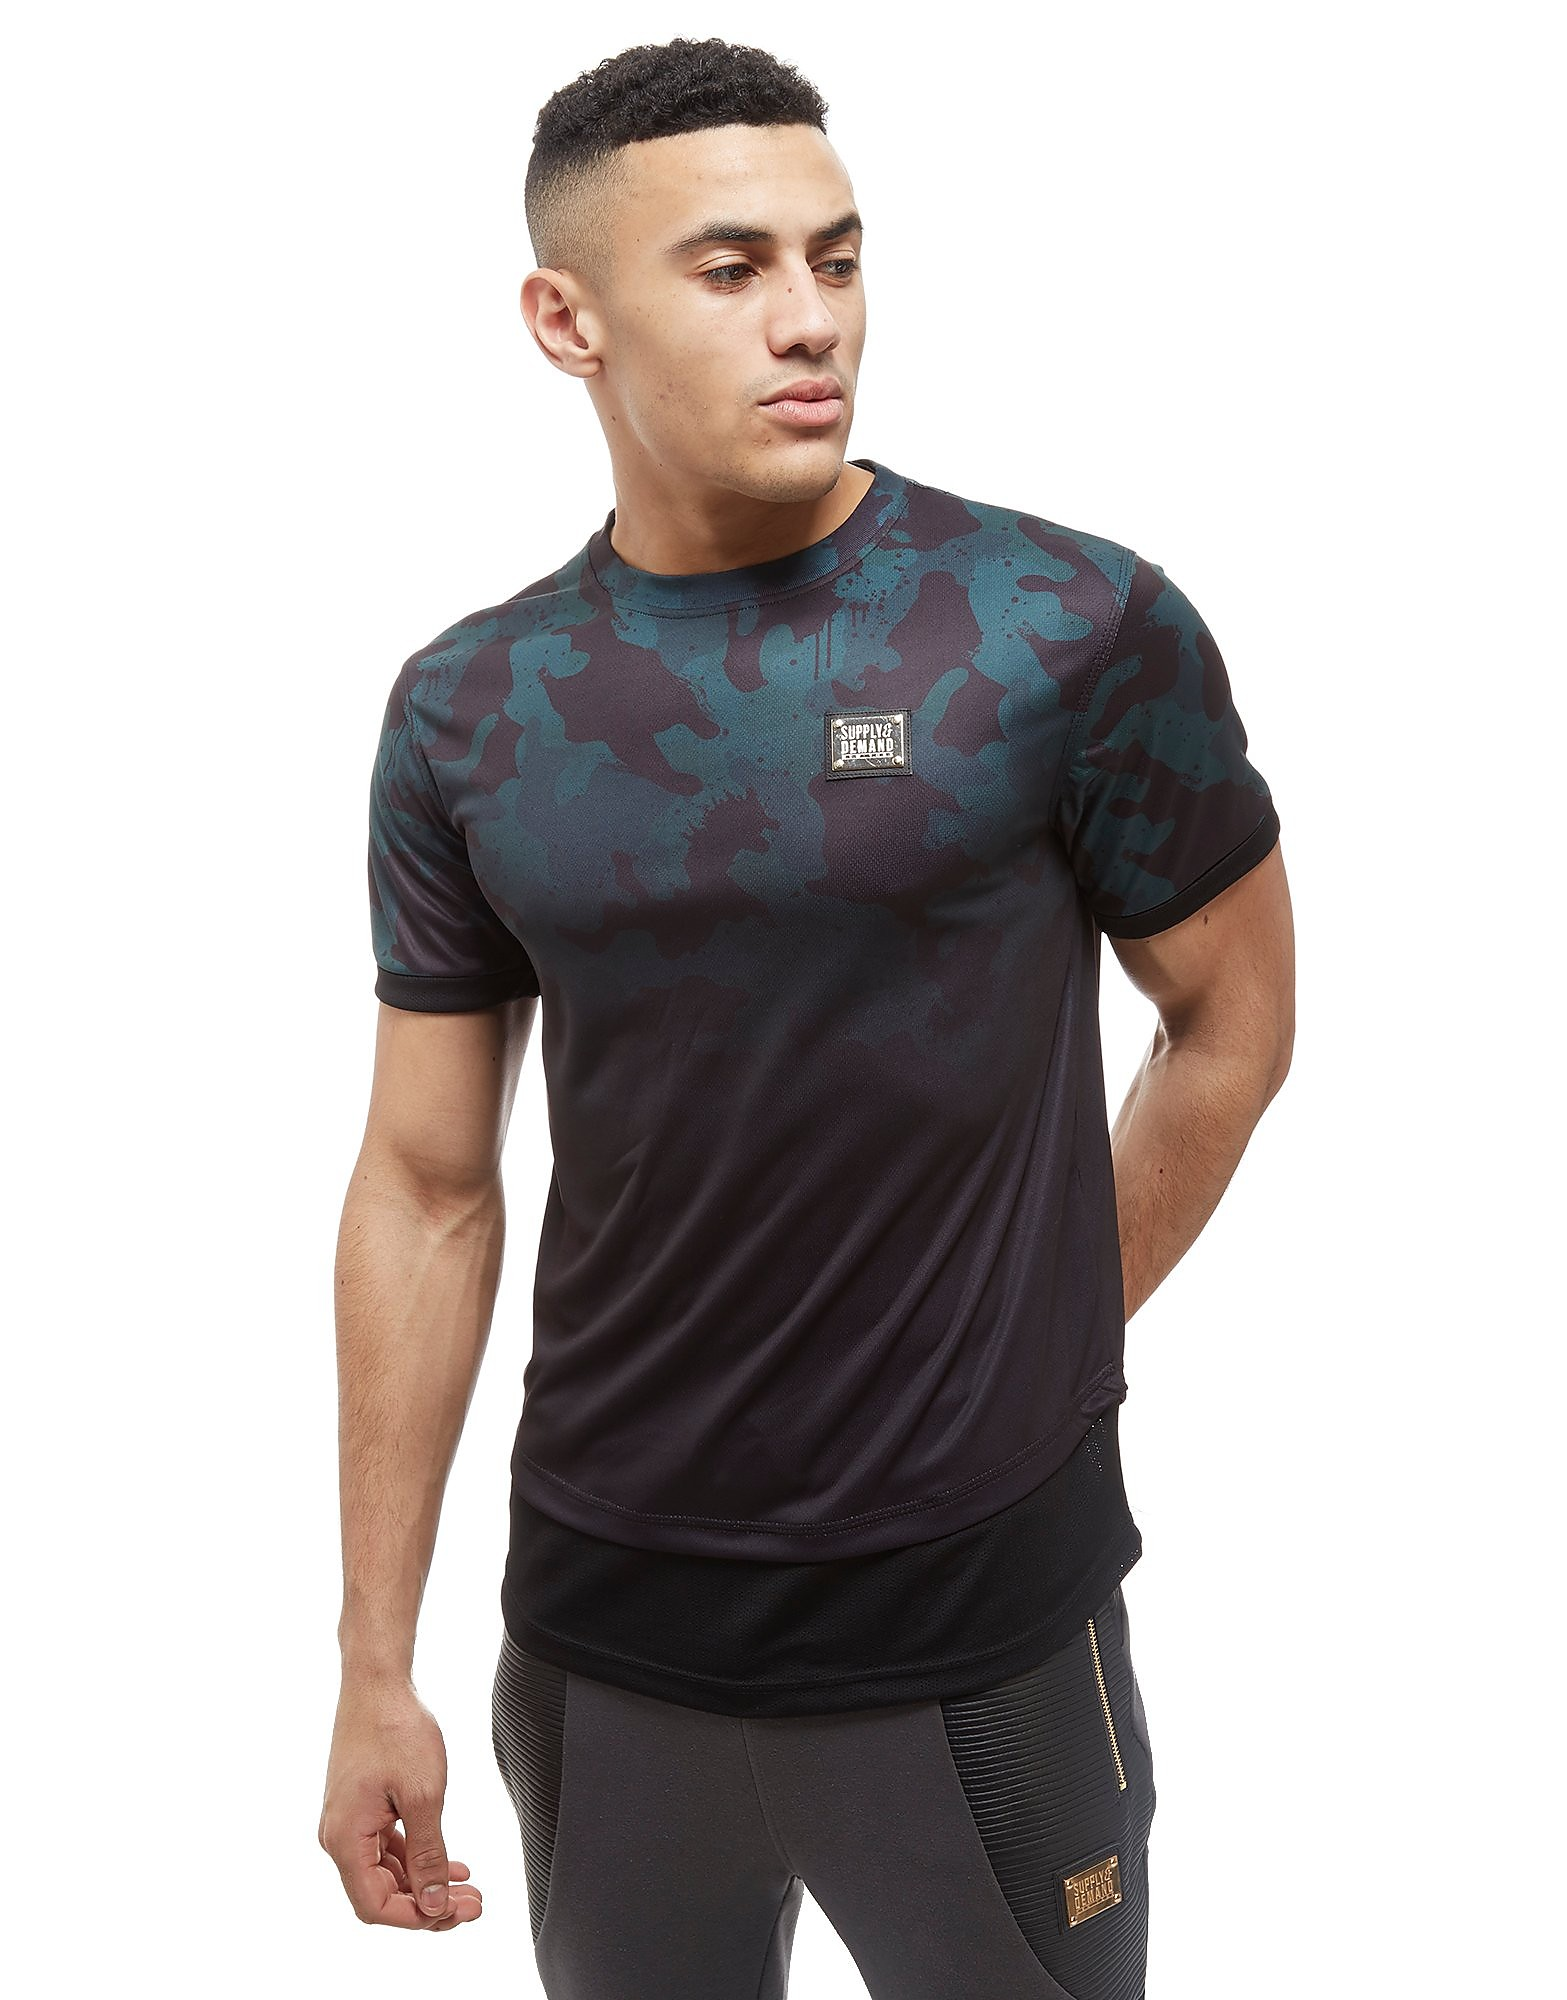 Supply & Demand Teal Fade Camo T-Shirt - Only at JD, Teal/Purple